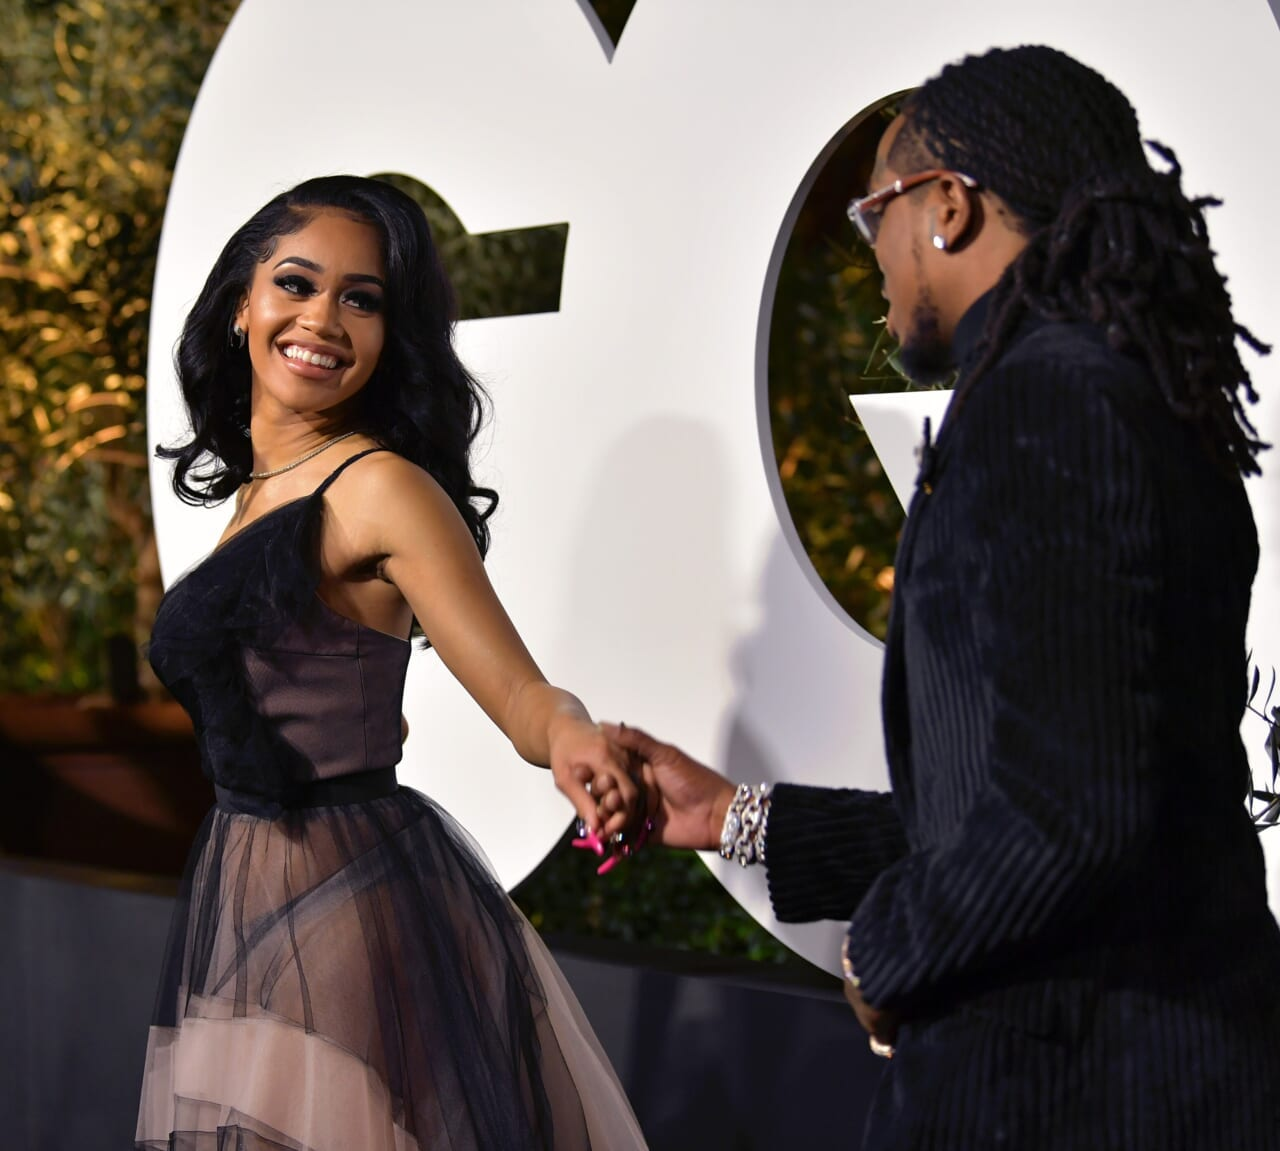 Saweetie says she knew Quavo loved her when he gave her his last piece of chicken - TheGrio